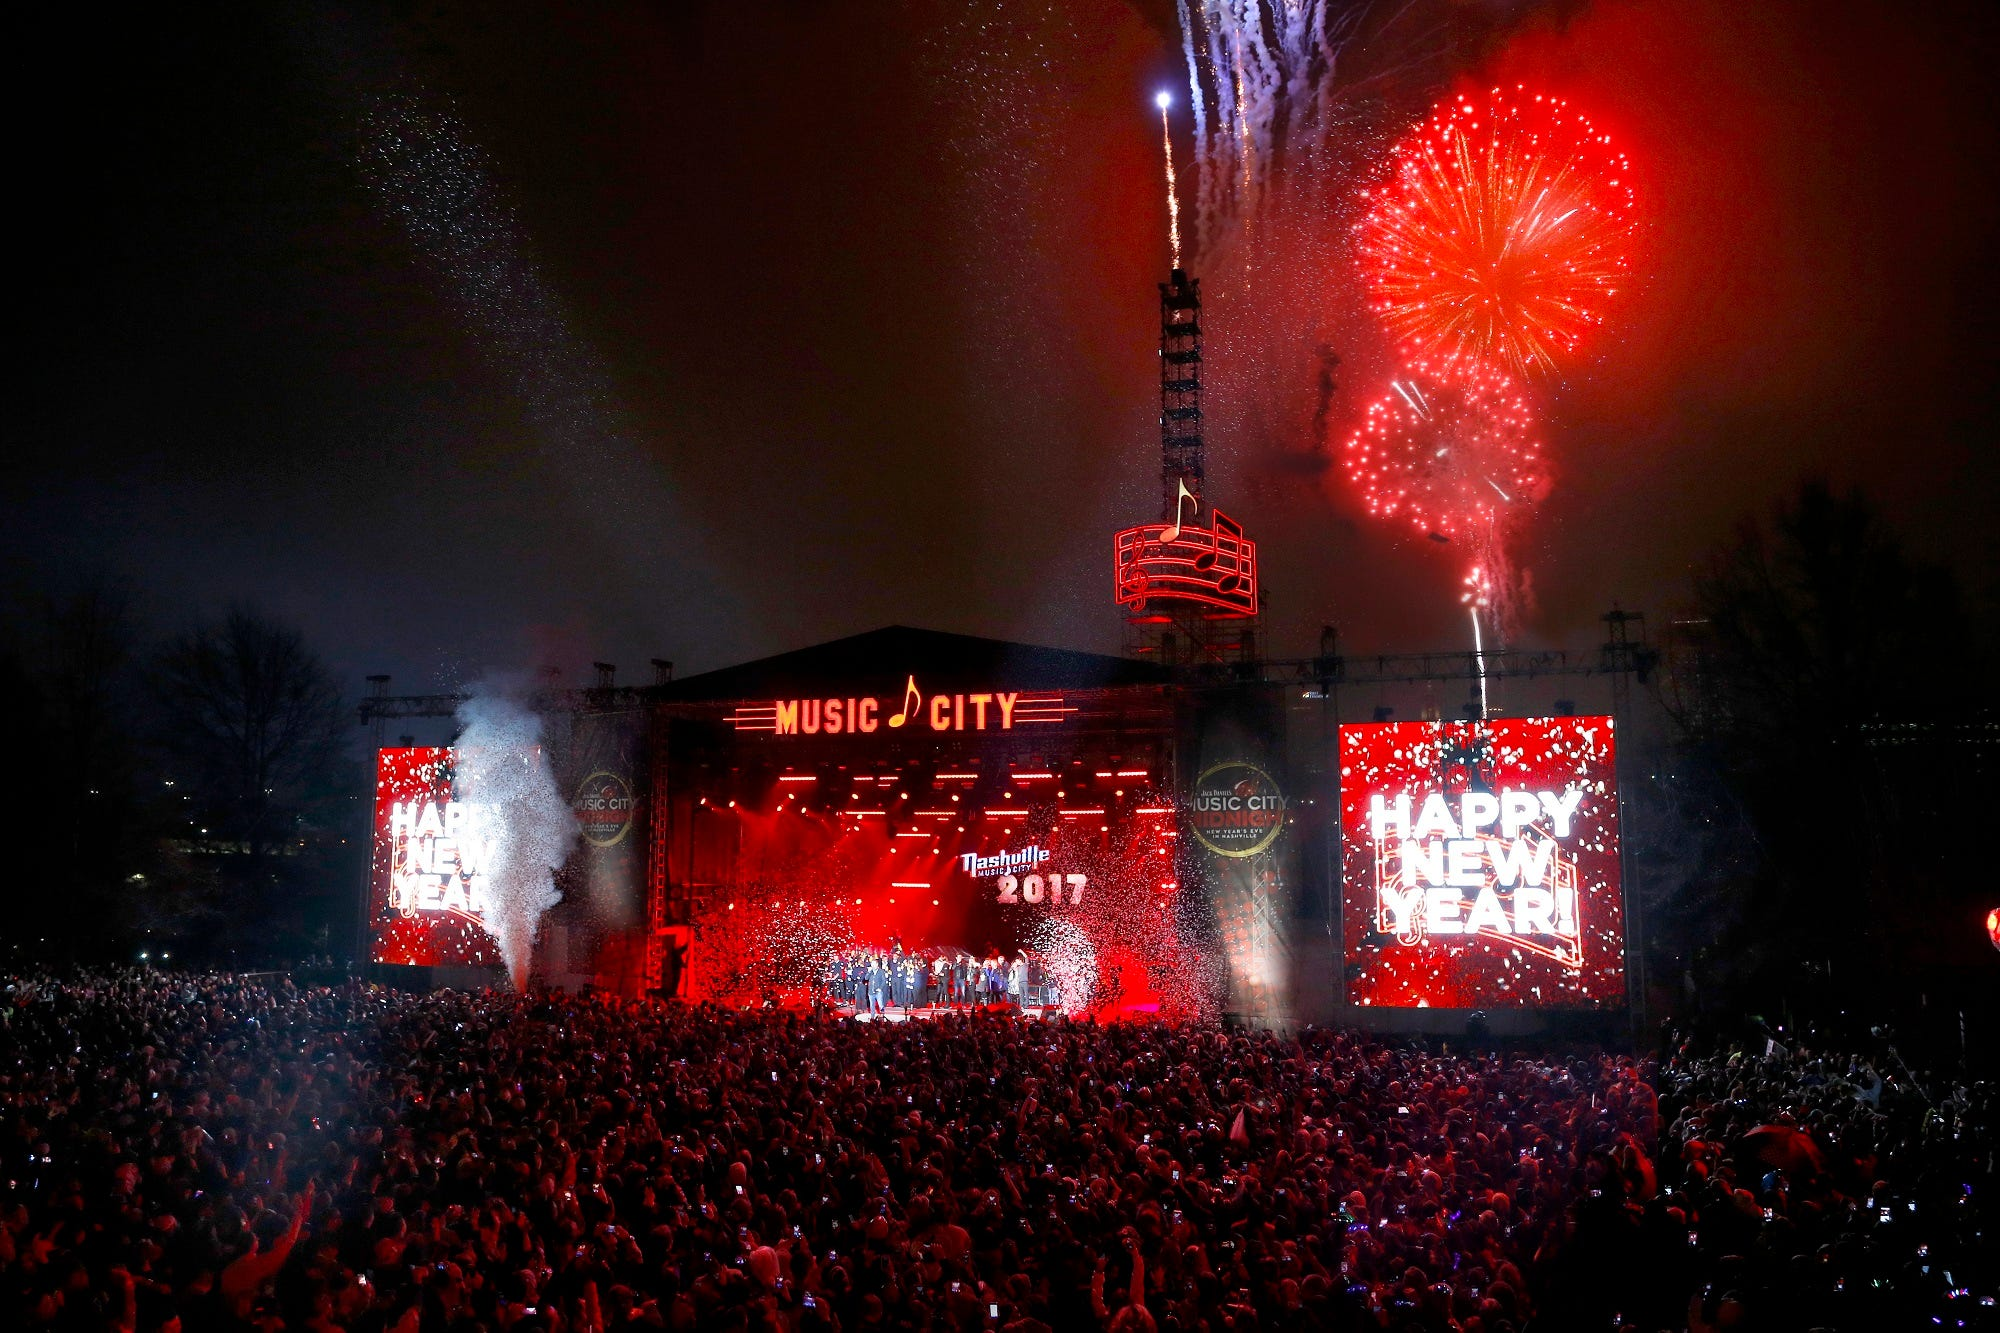 5 things to know before you go to Music City Midnight